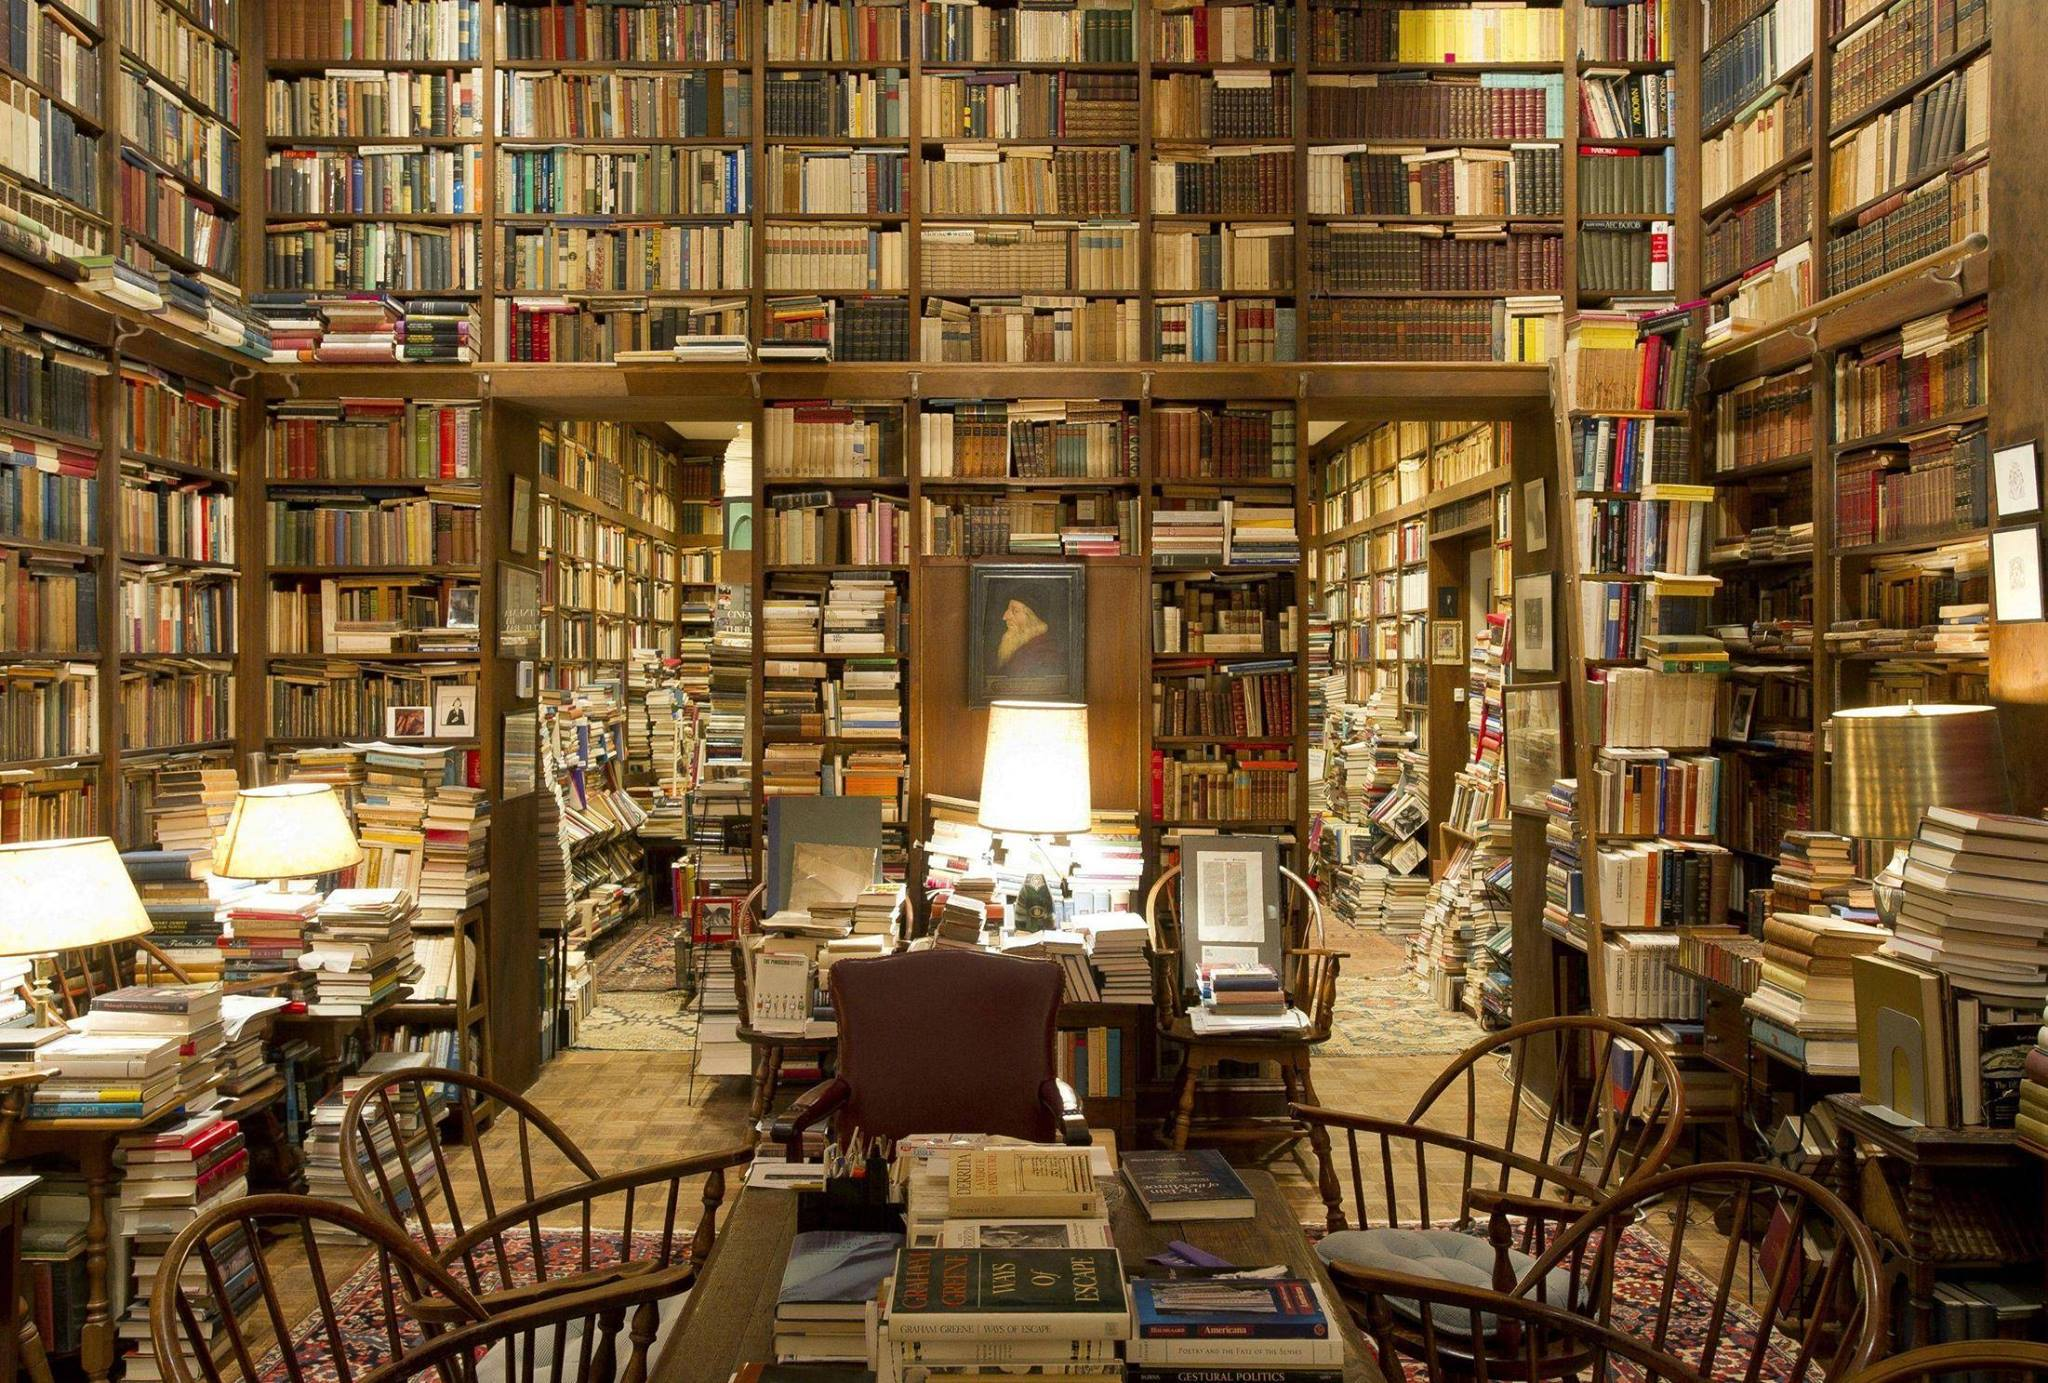 Cultivating Curiosity in a Professor's Heavenly Home Library